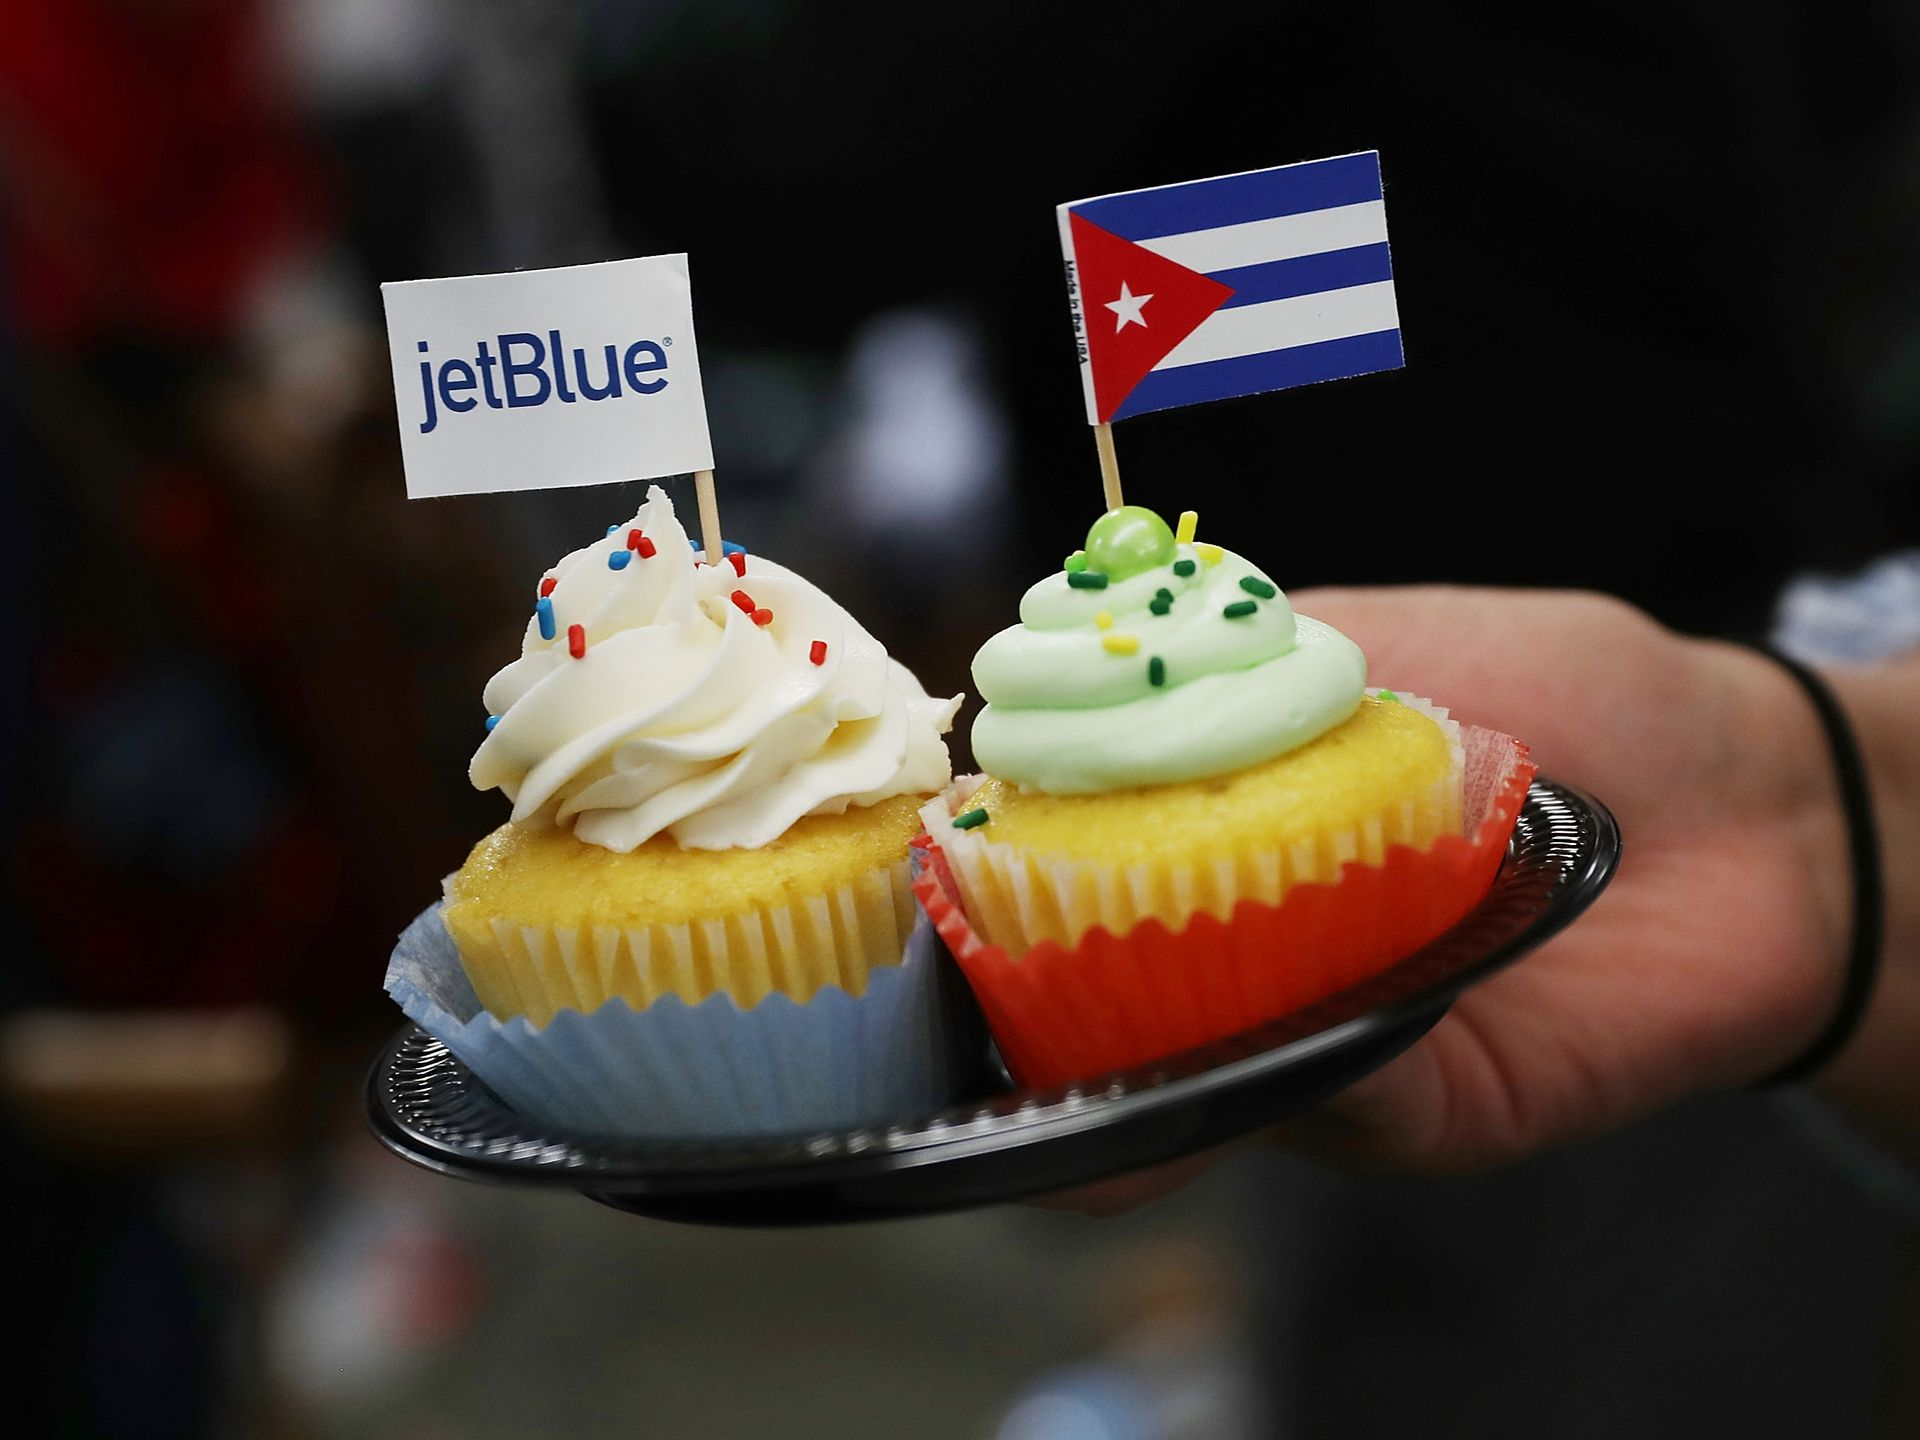 Cuban pastries prepared for the inauguration of regular flights between U.S. and Cuba. Photo by USA Today.